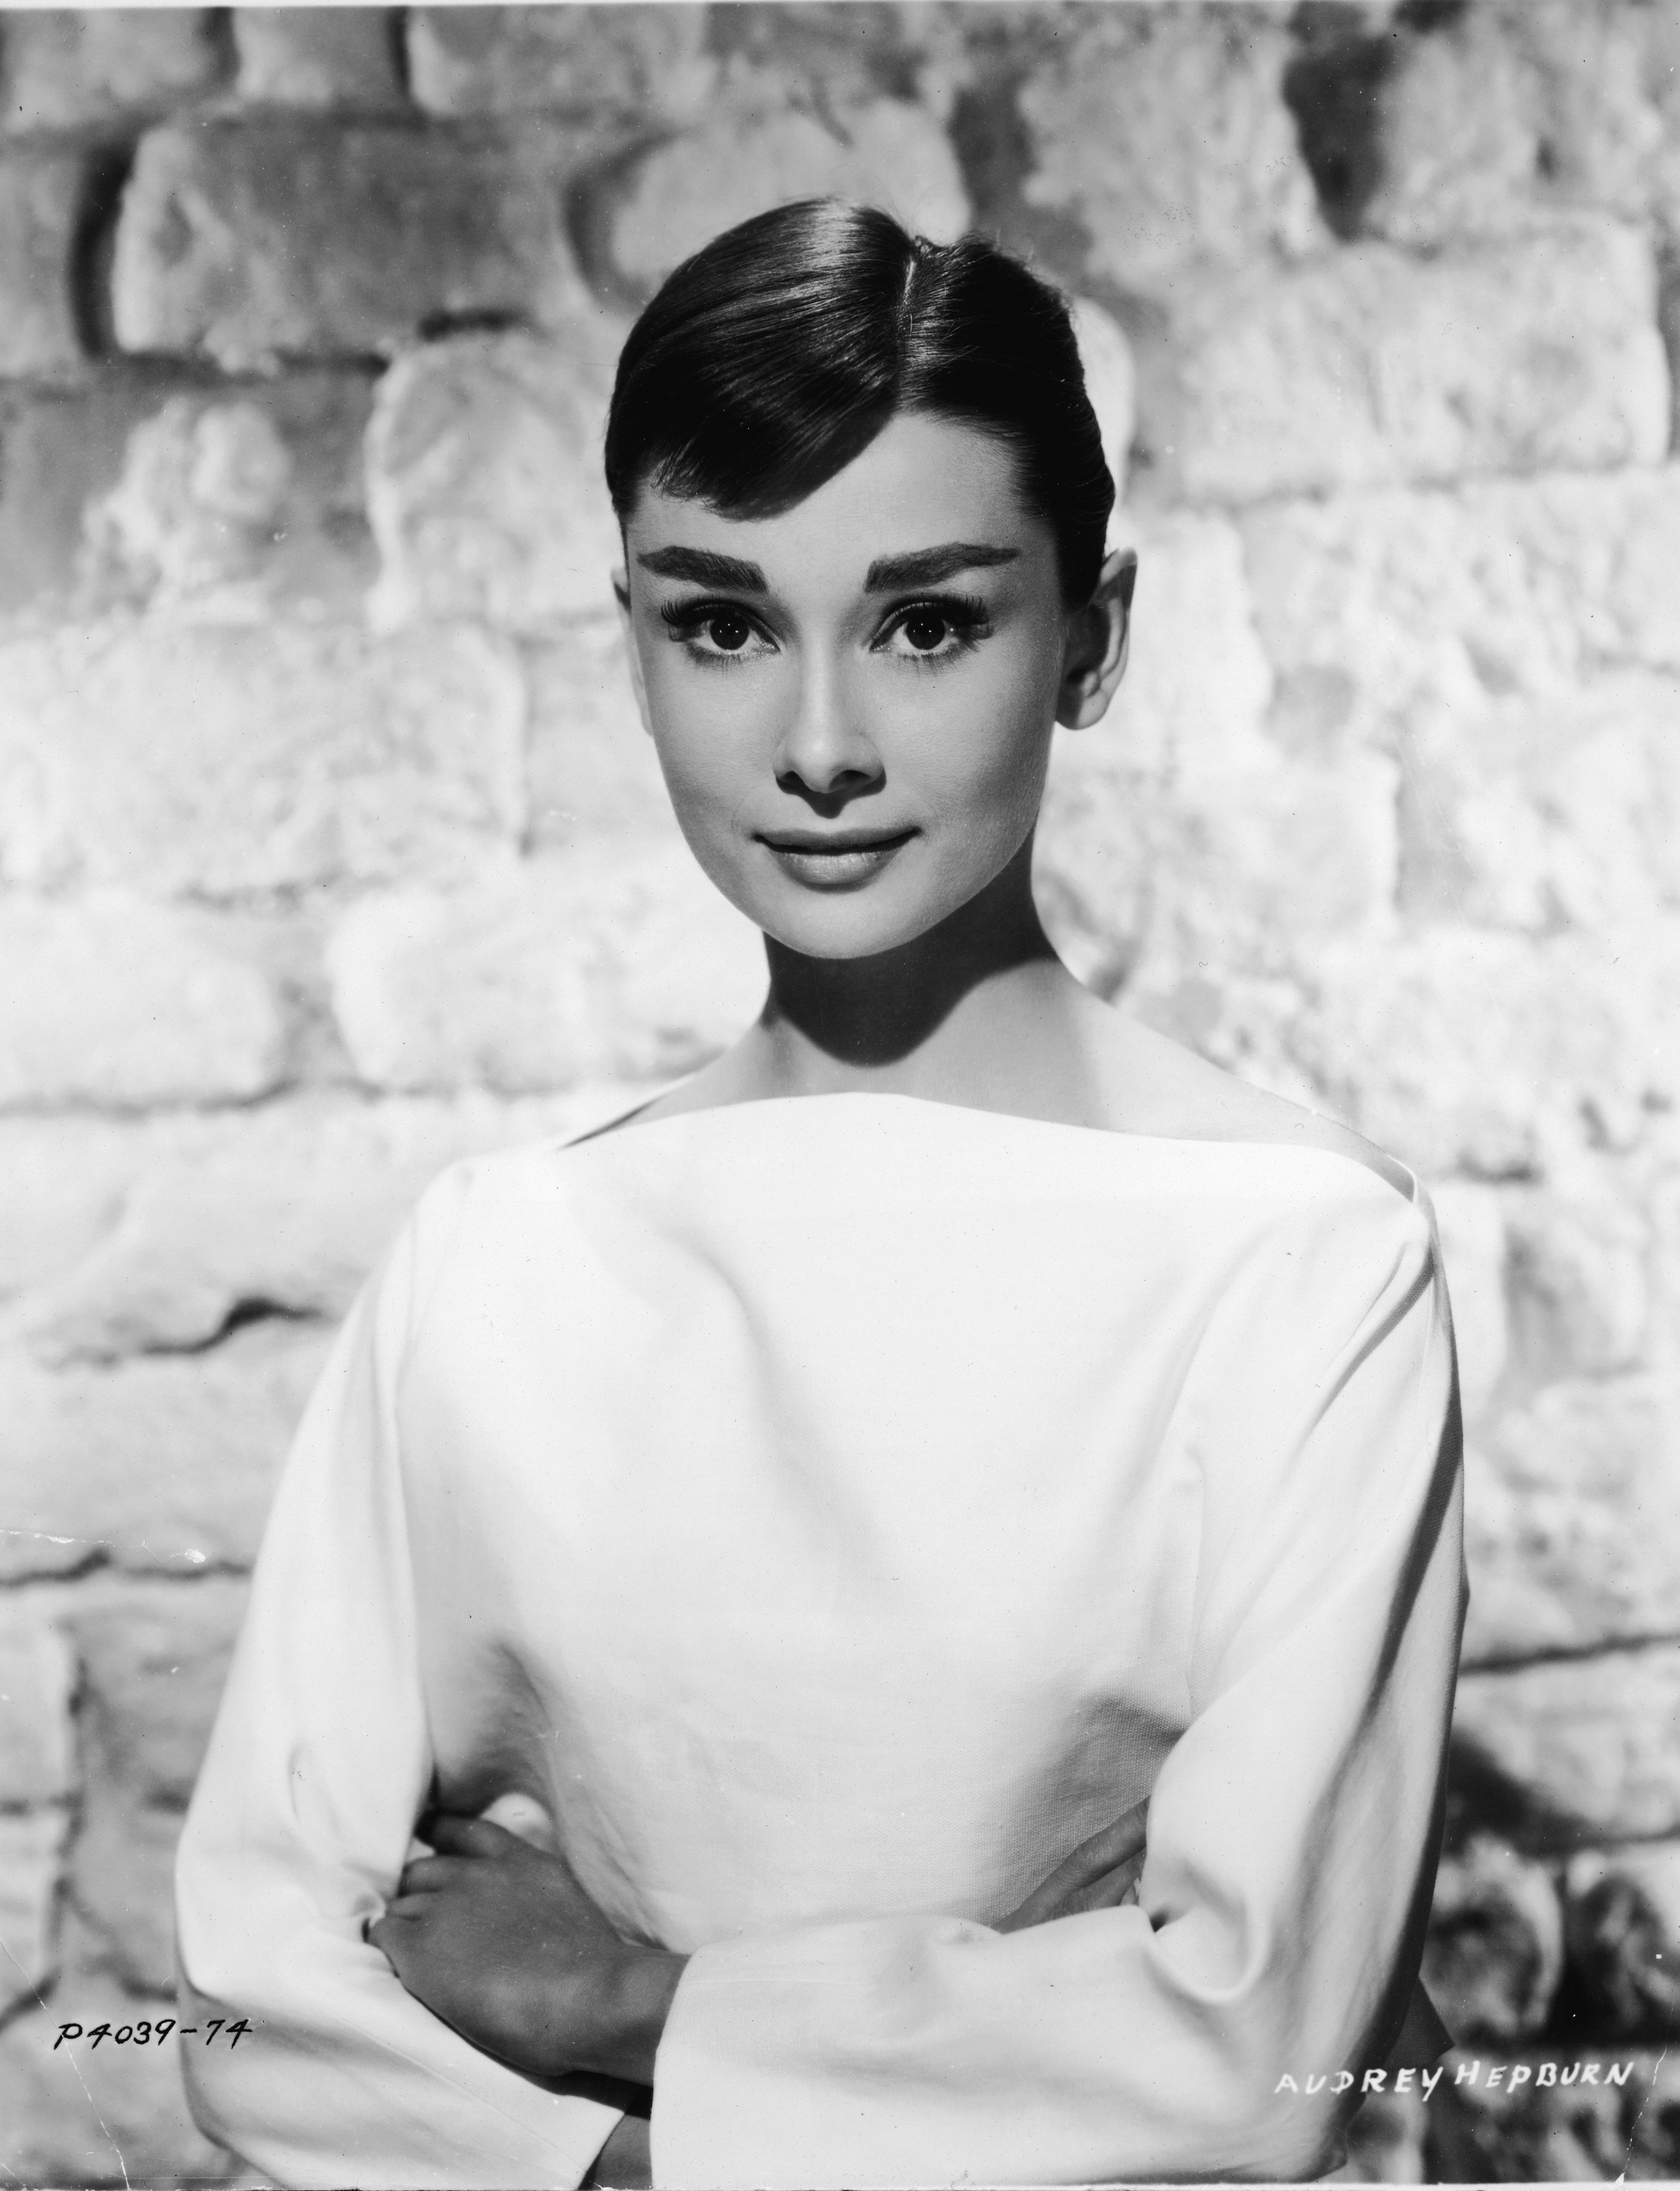 The fashion icon, Audrey Hepburn. | Source: Getty Images